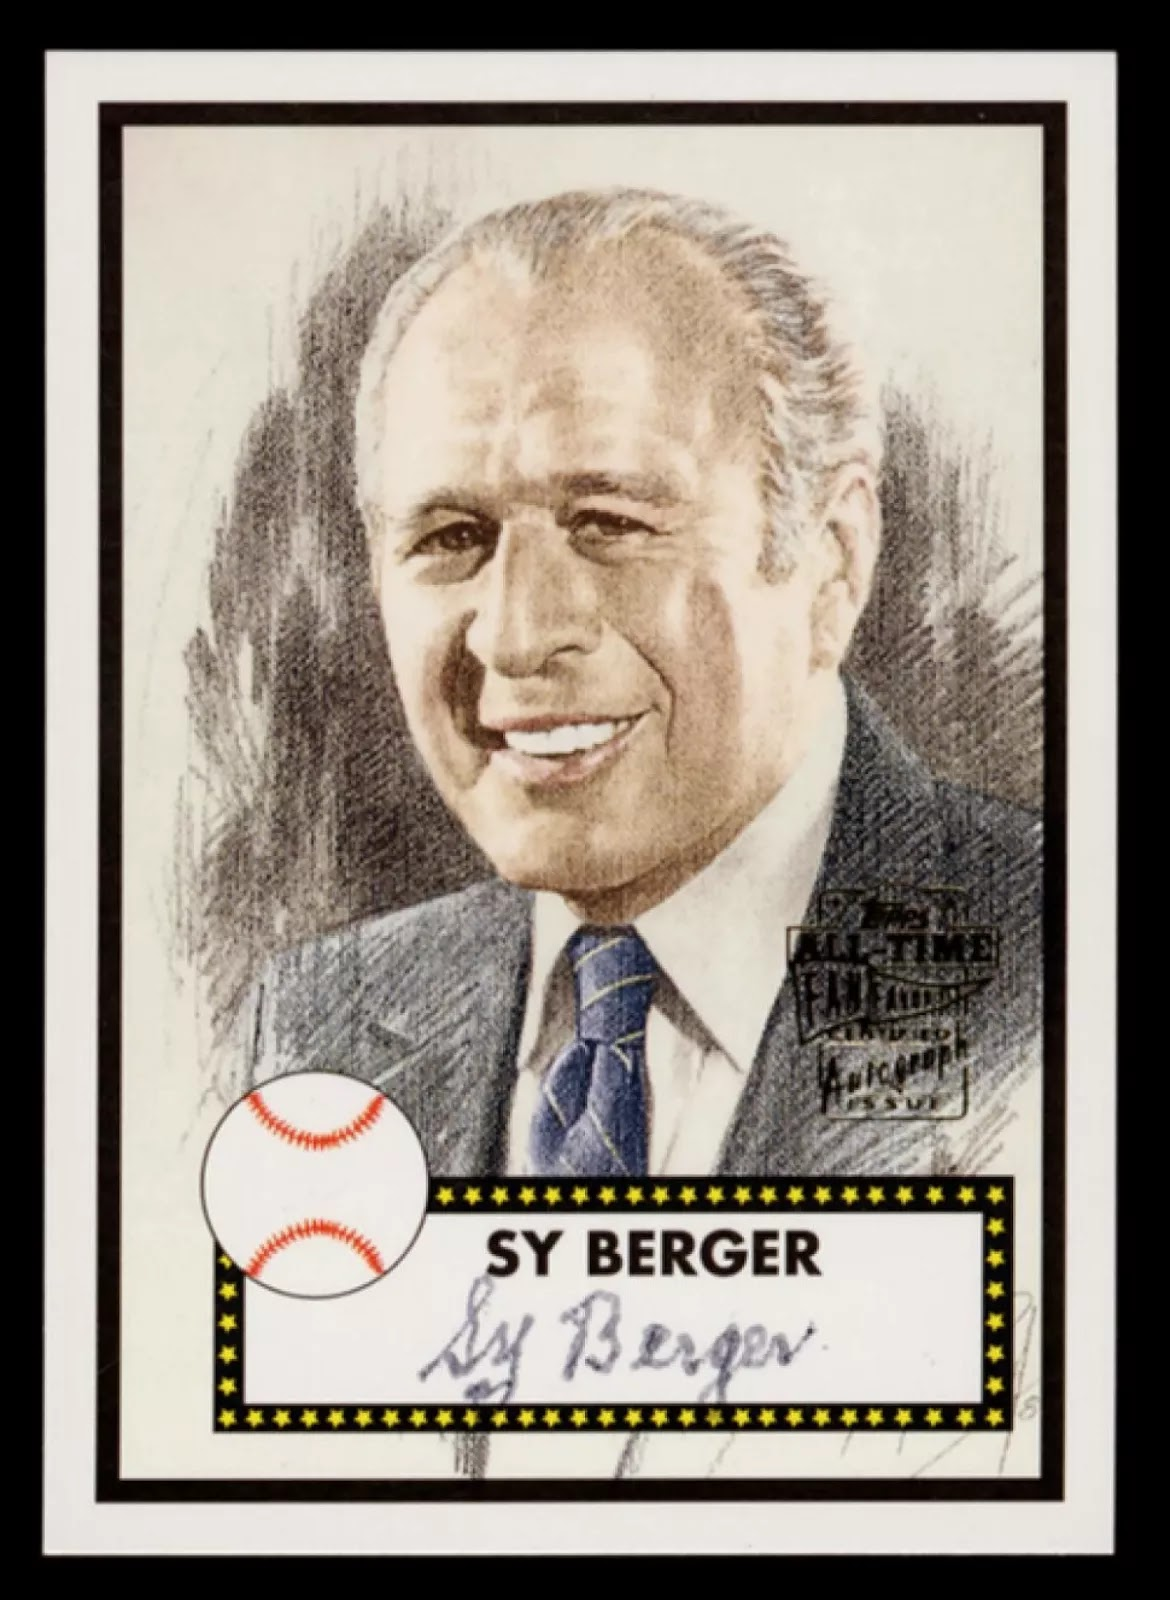 Sy Berger, creator of the modern baseball card